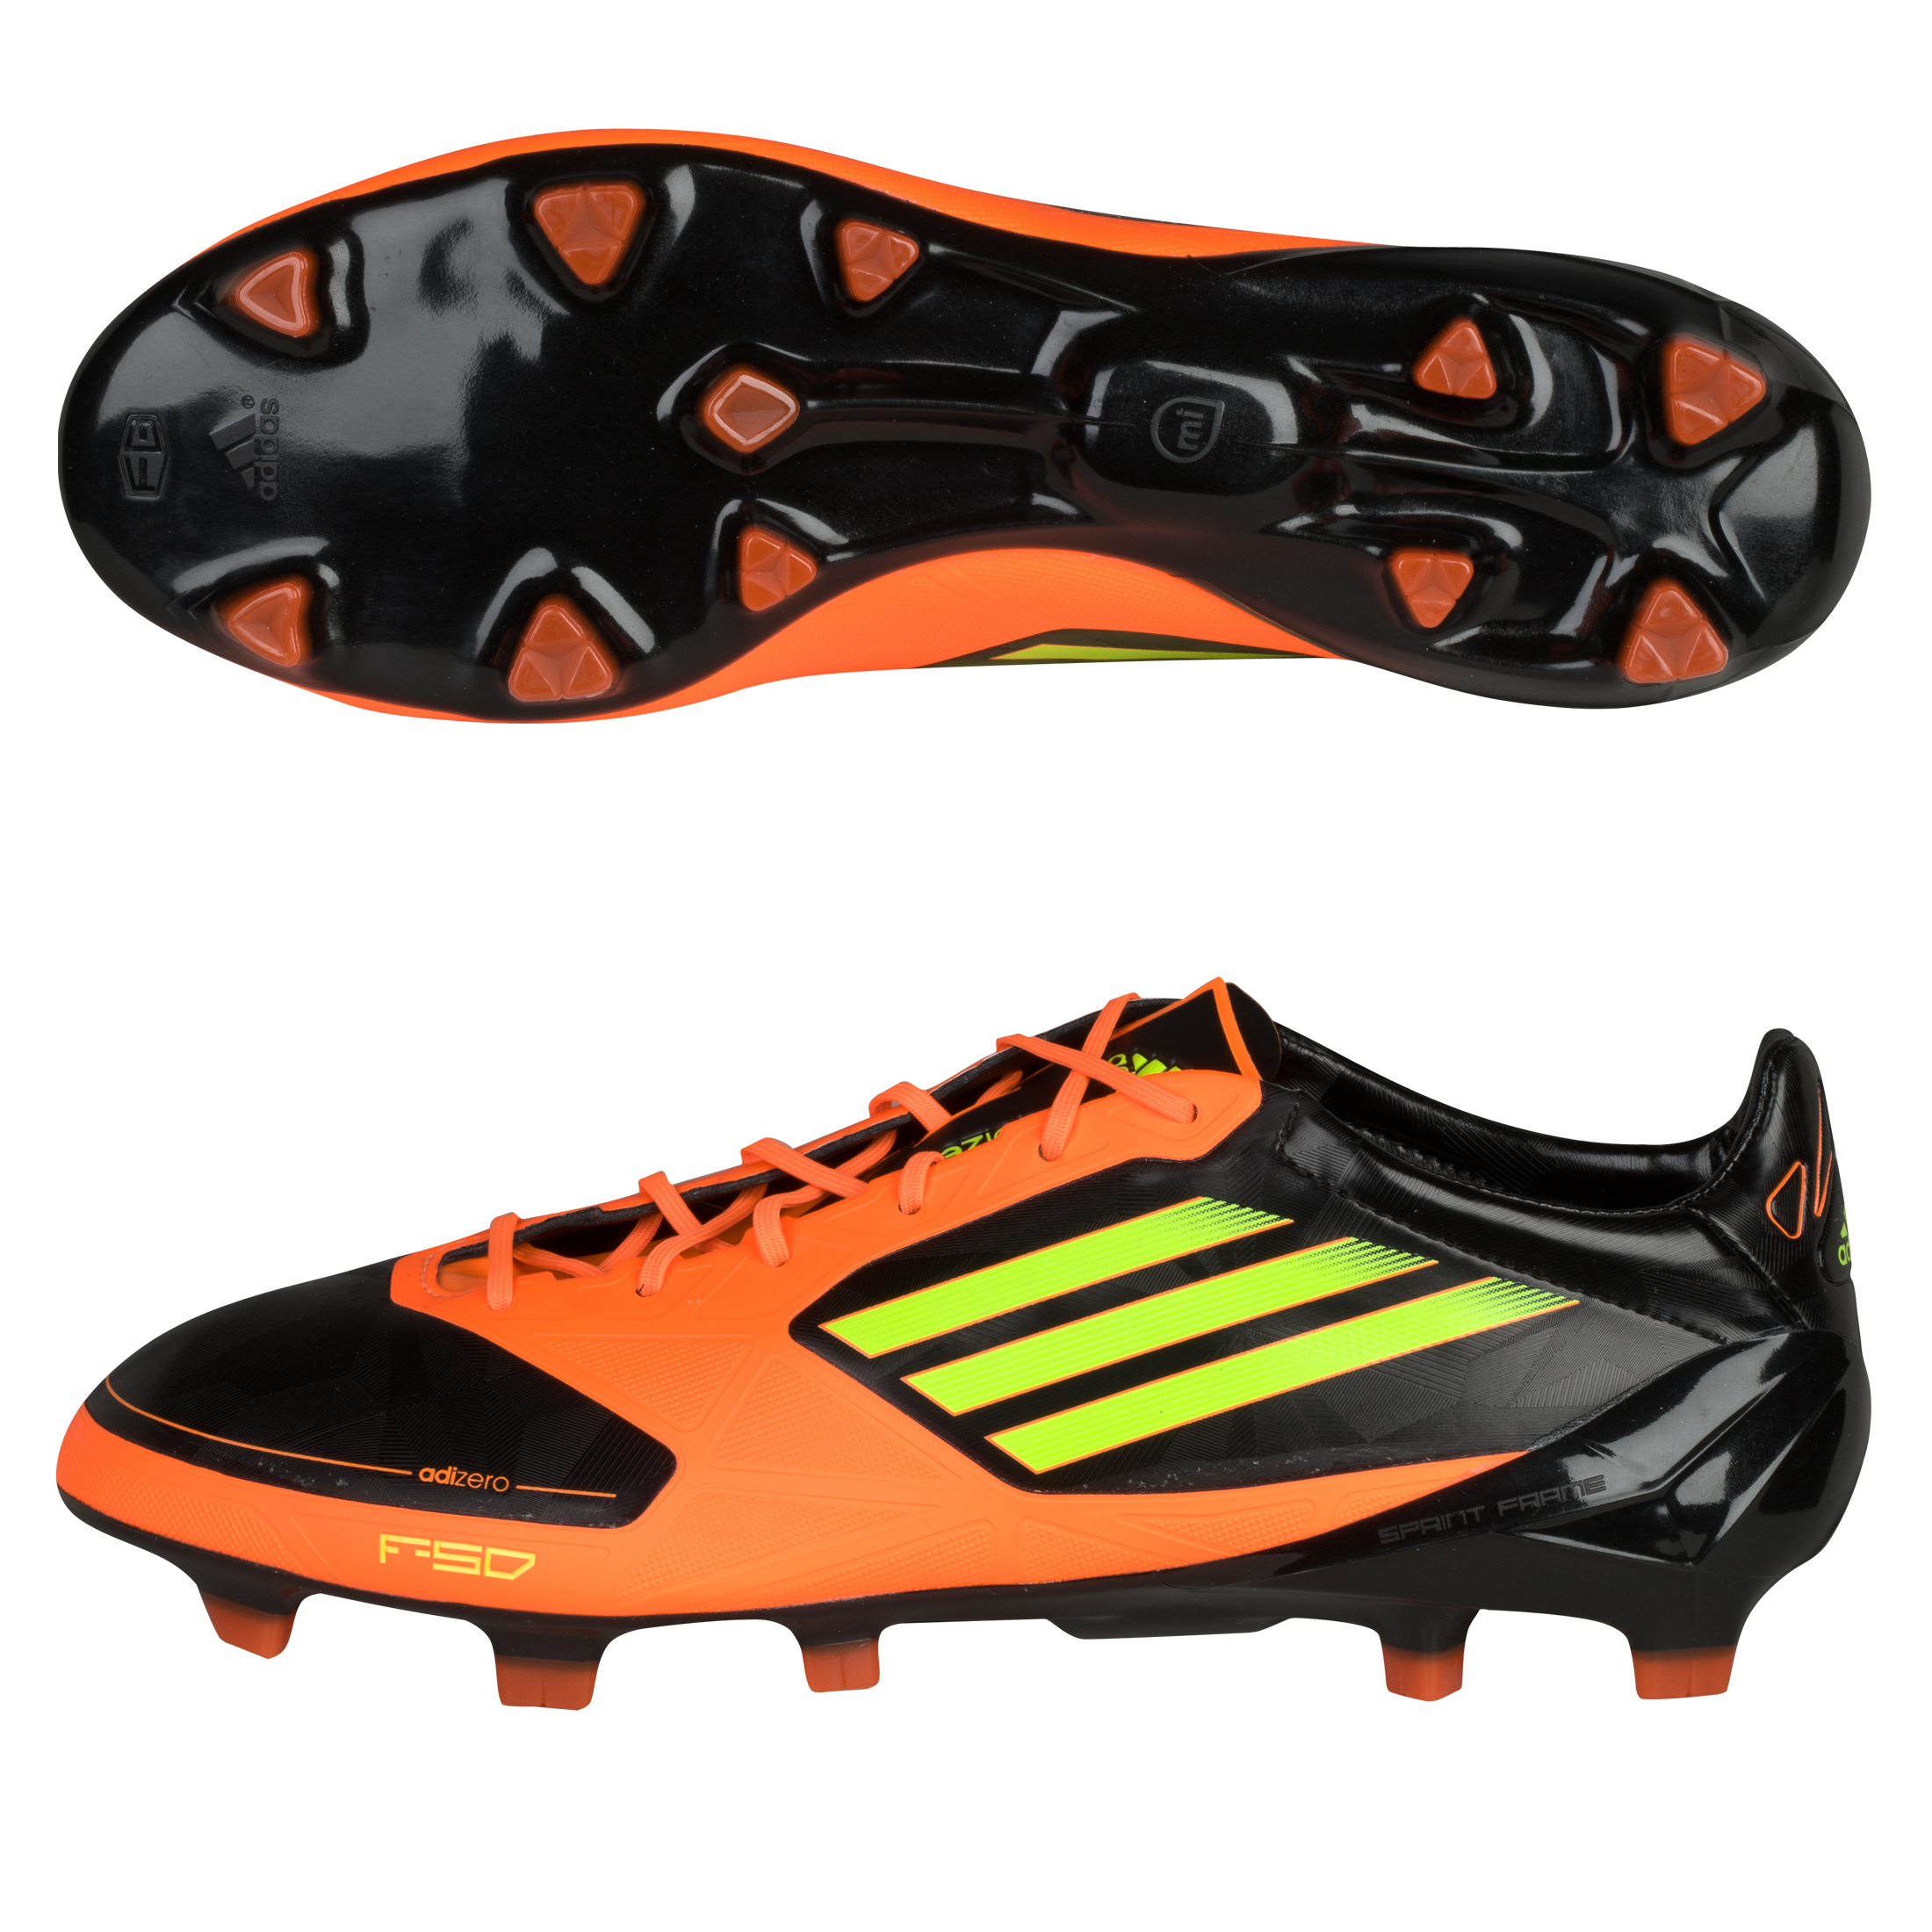 adidas F50 adizero TRX Firm Ground Synthetic Football Boots - Black 1/Electricity/Warning